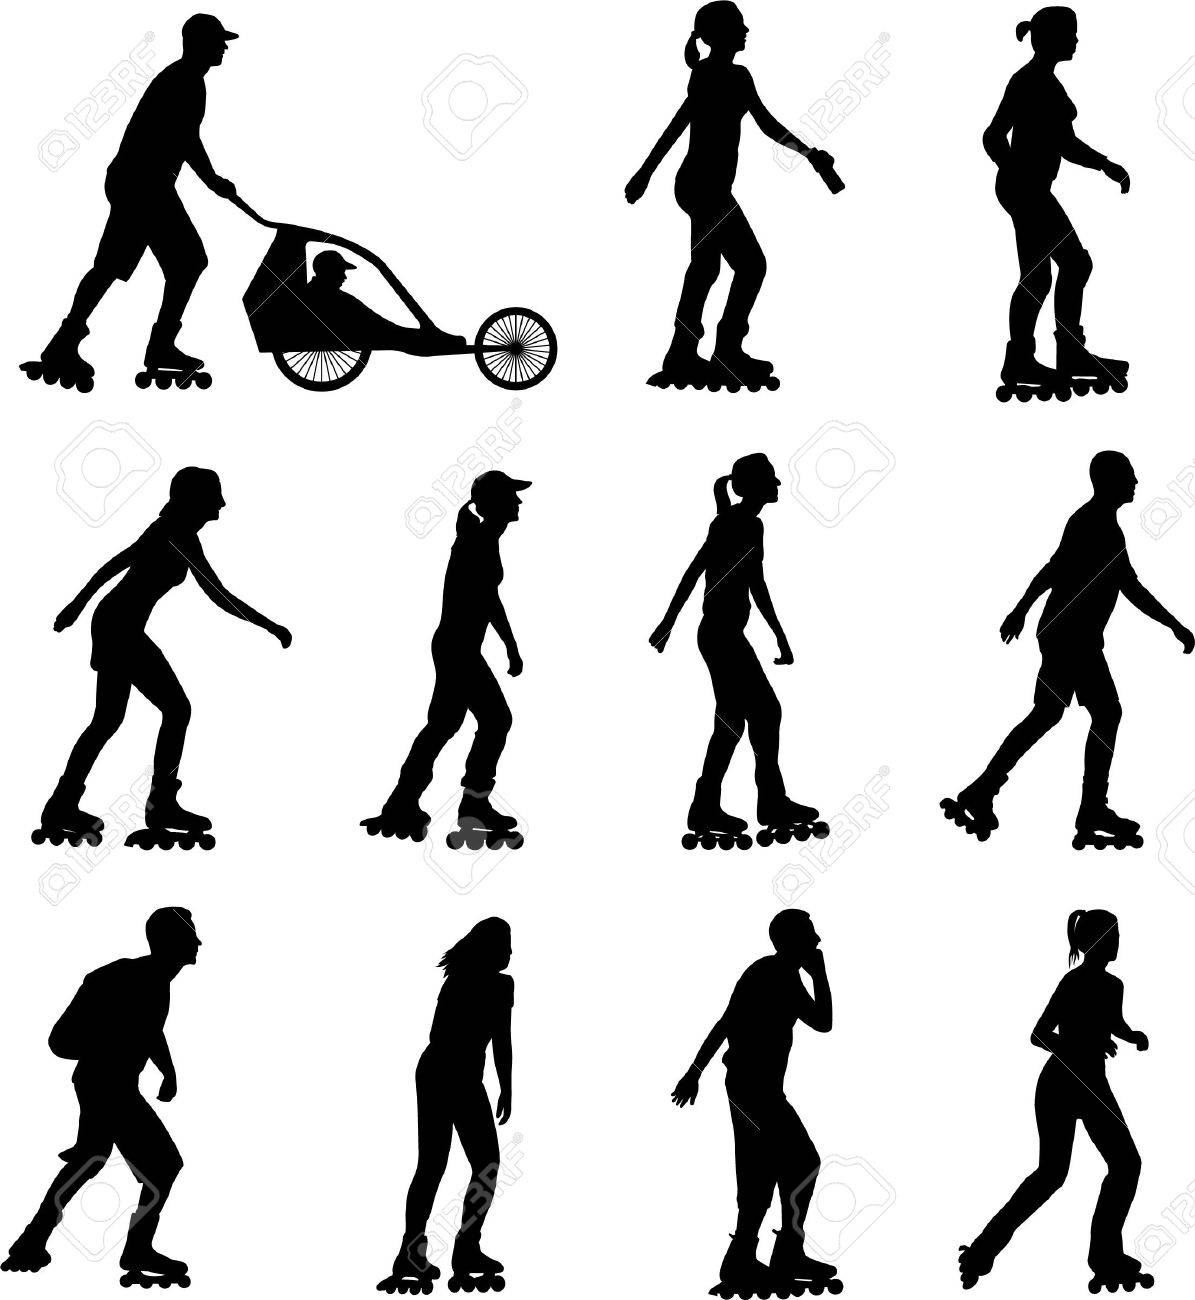 rollerskating silhouettes - vector - 9229509